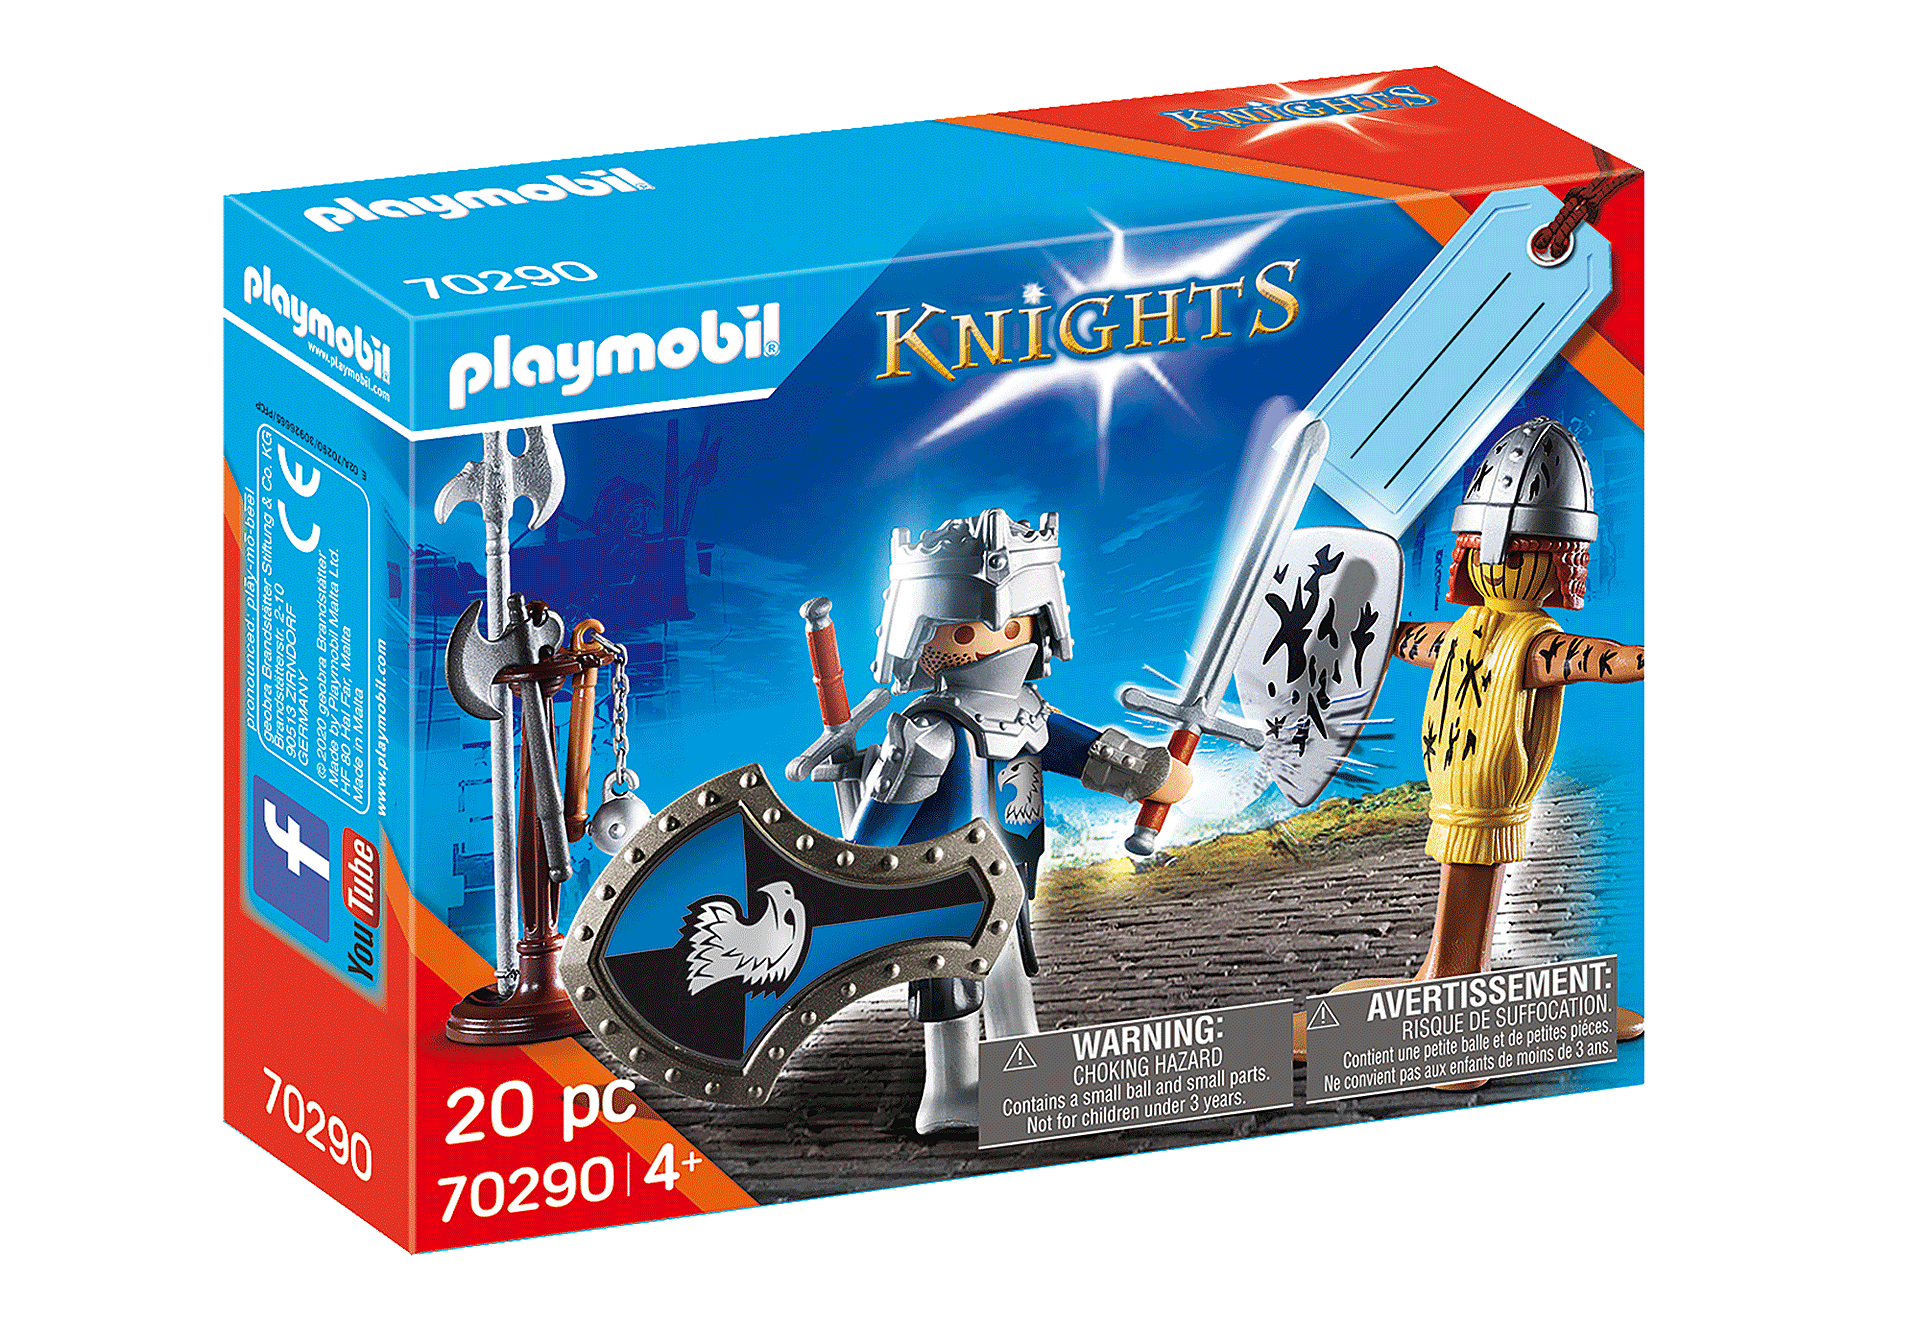 70290 Knights Gift Set zoom image2